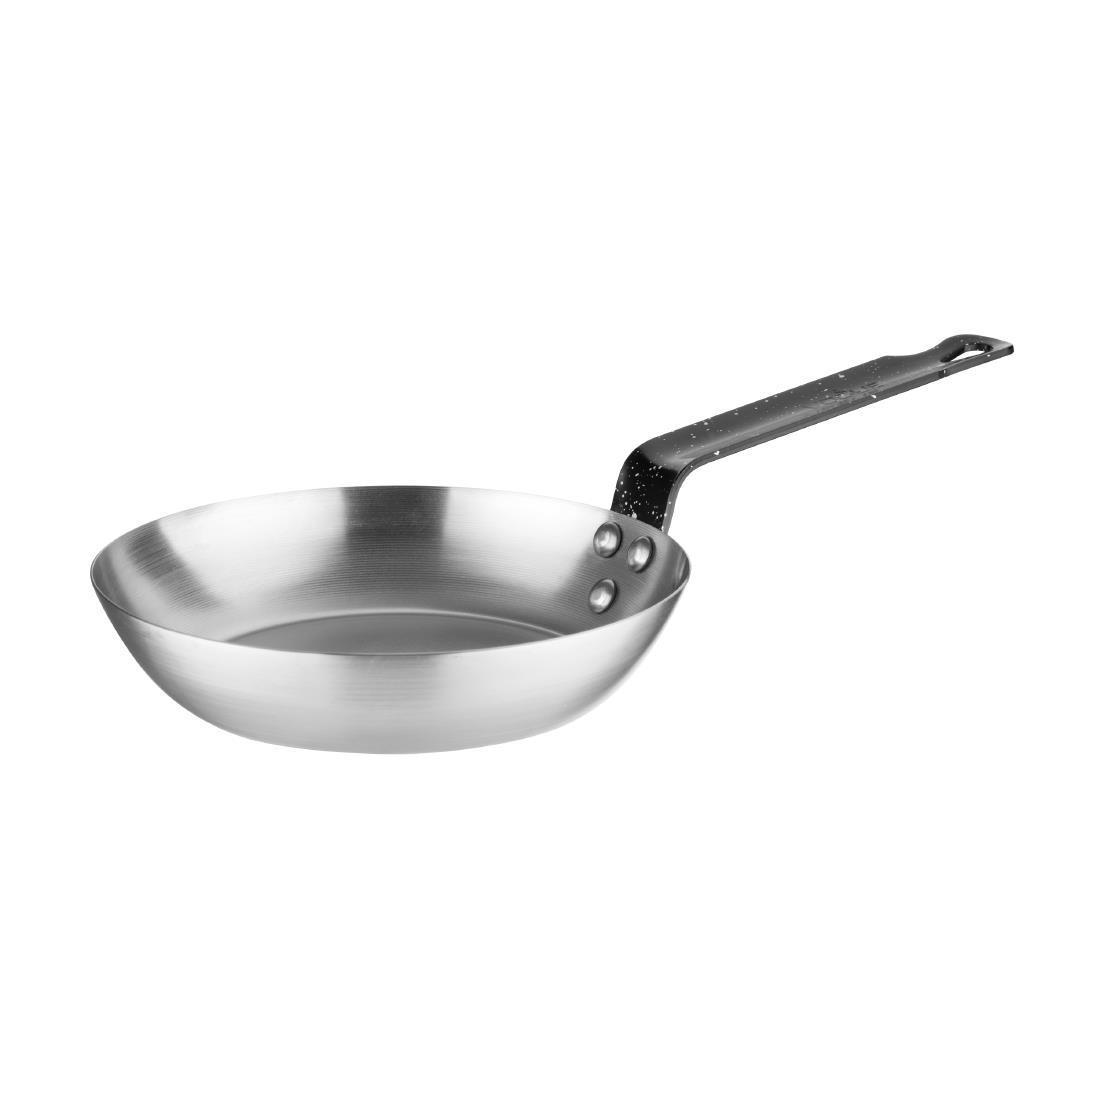 Vogue Black Iron Induction Frying Pan 180mm - Each - GD062